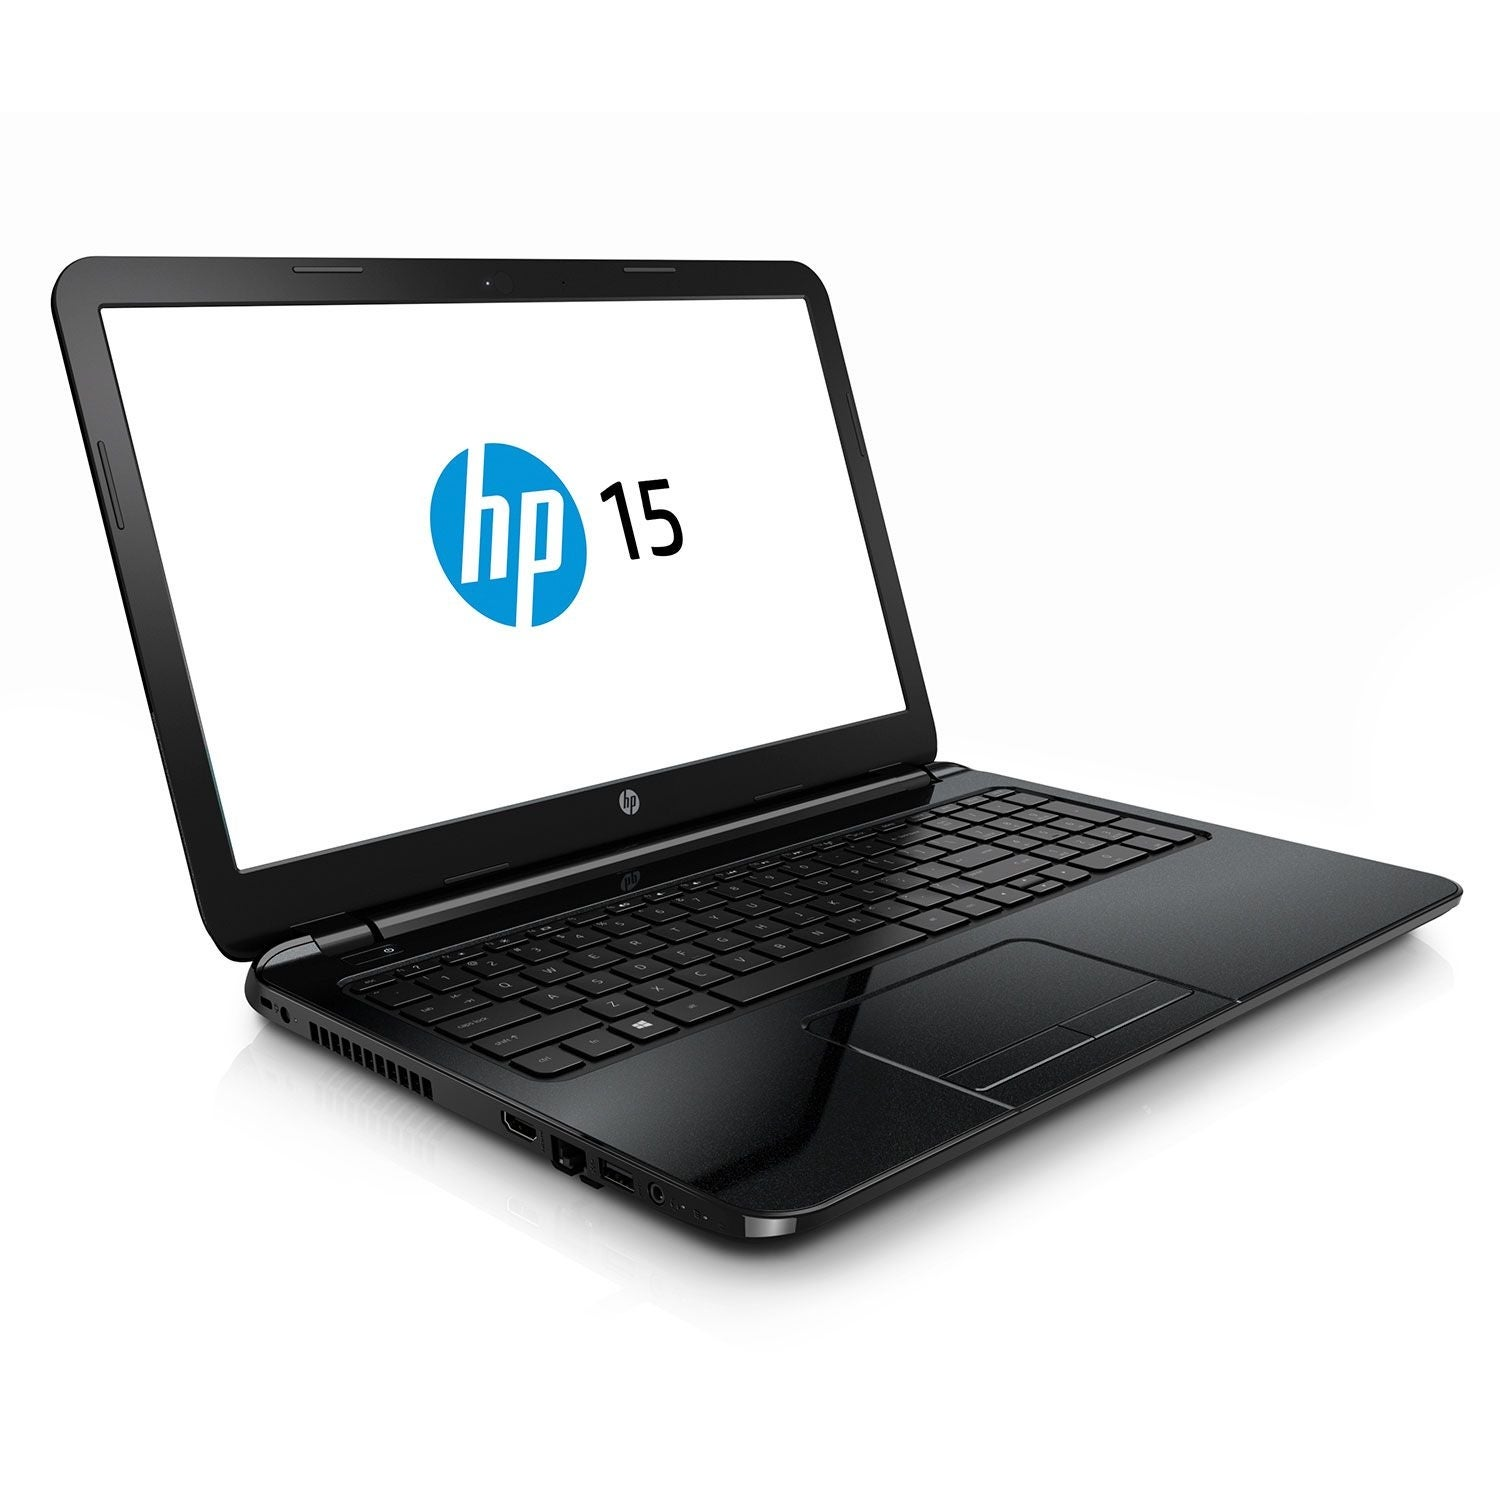 Shop Manufacturer Refurbished Hp 15 G023cl 15 6 Laptop Amd A8 6410 2ghz 4gb 500gb Amd Radeon R5 Win 10 Overstock 13478615